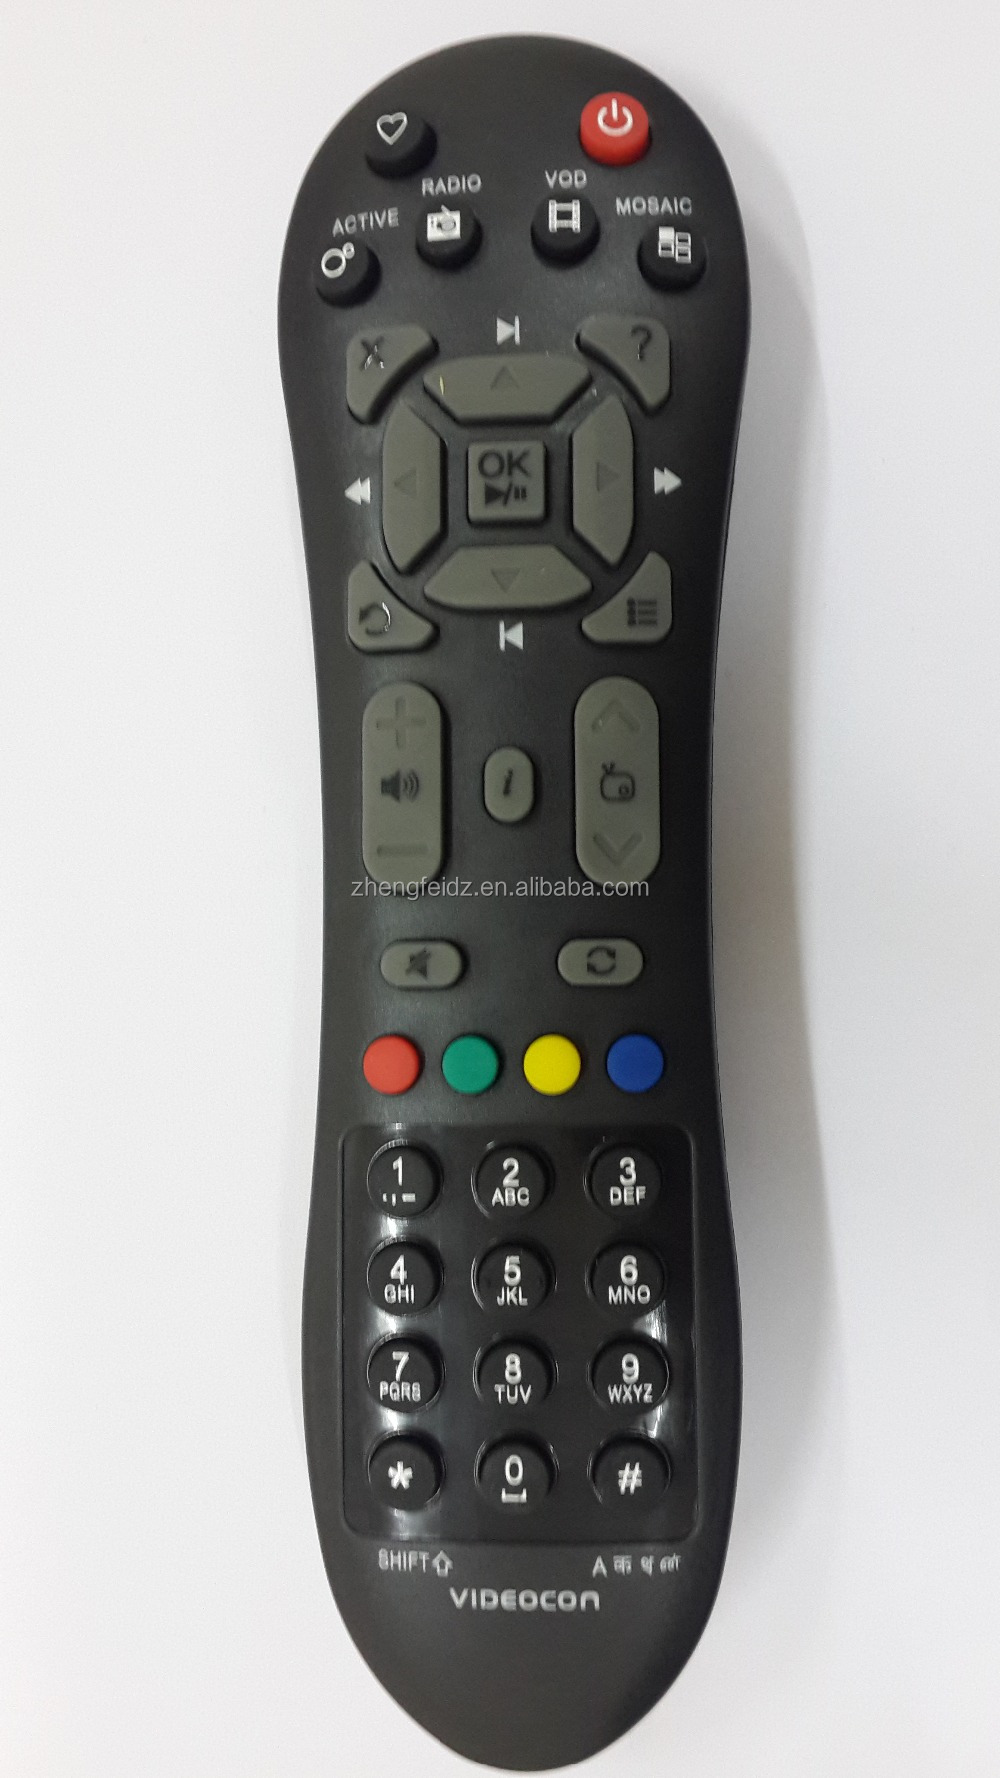 Satellite Box D2h Vc125 Lripl Endeavor Towards Quality Remote Control Vc  D2h Skd - Buy Universal Remote Control For Stb And Tv Learning Black